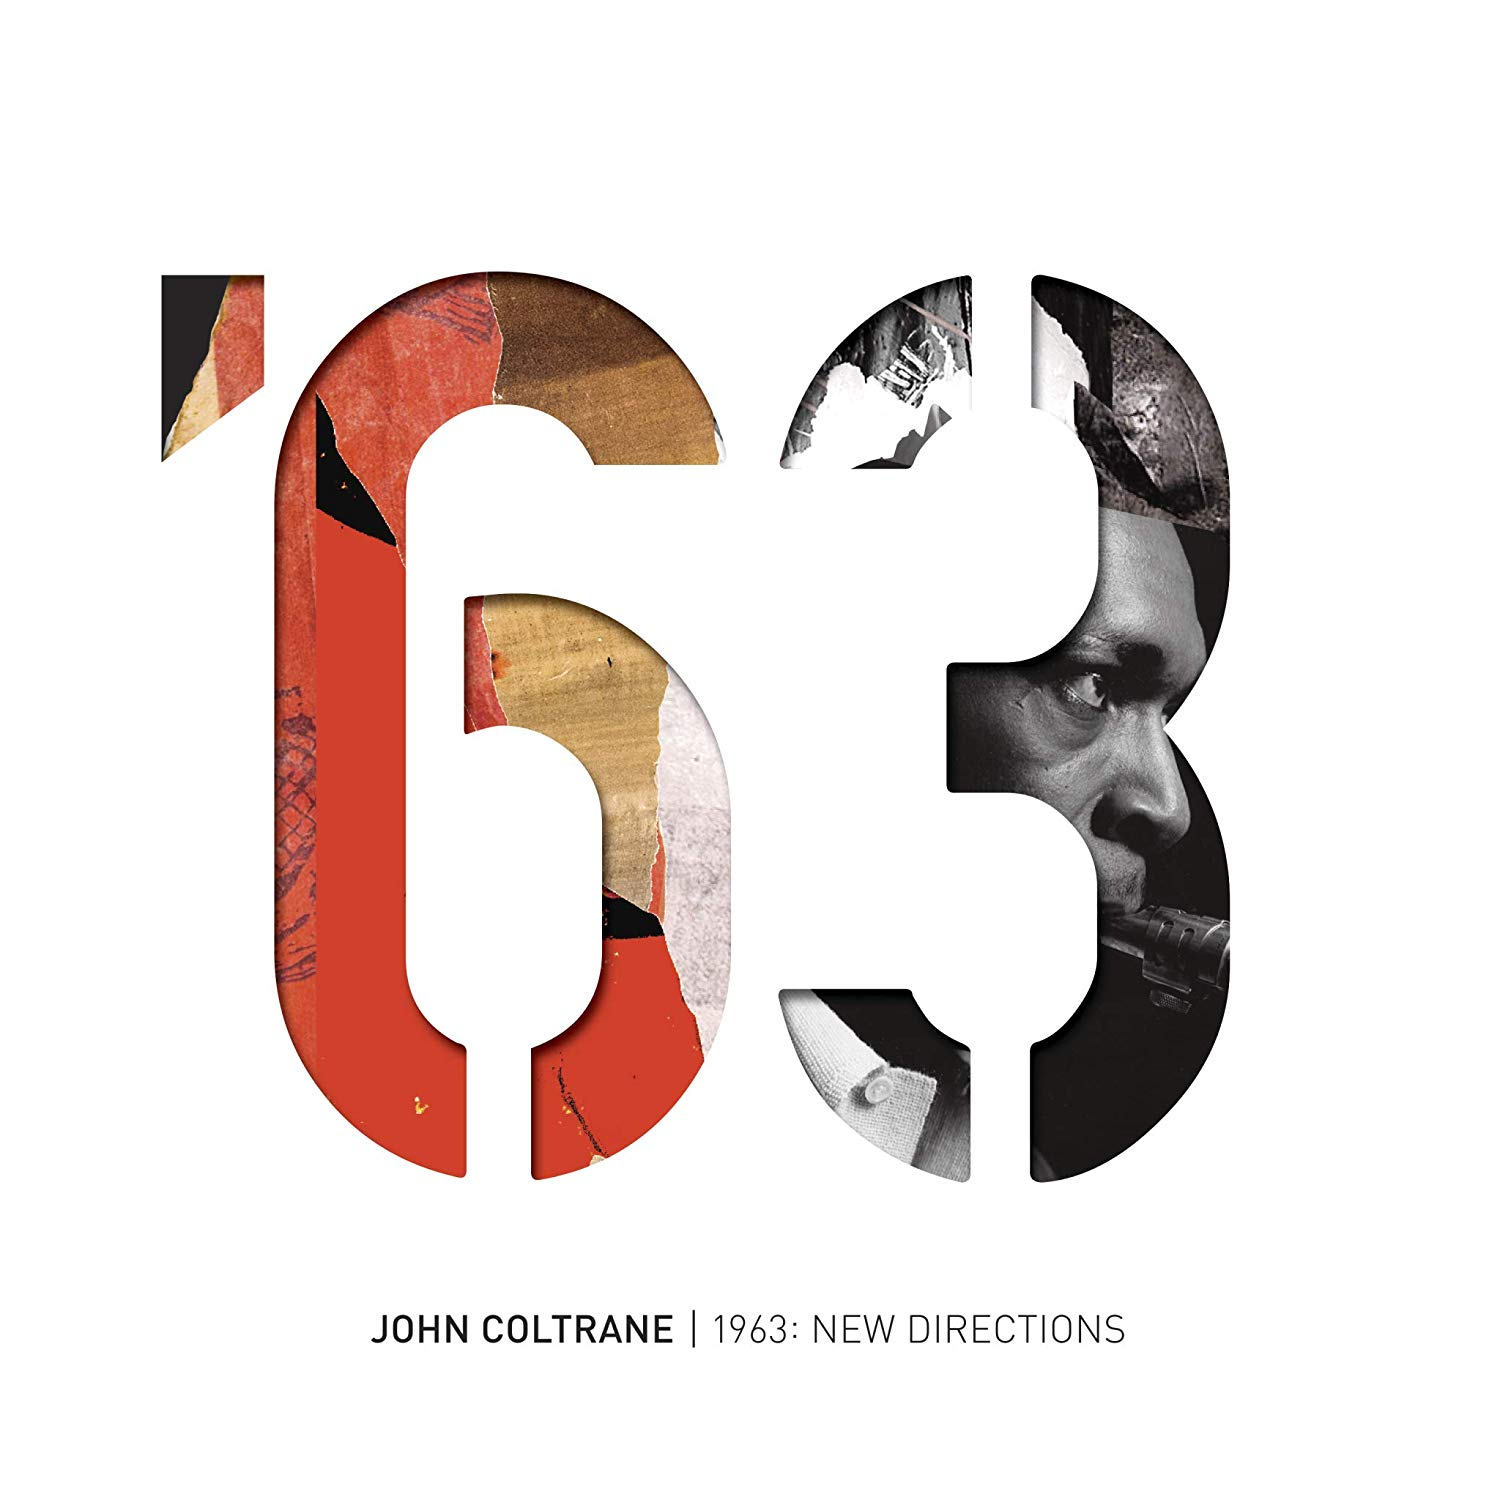 John Coltrane - 1963: New Directions